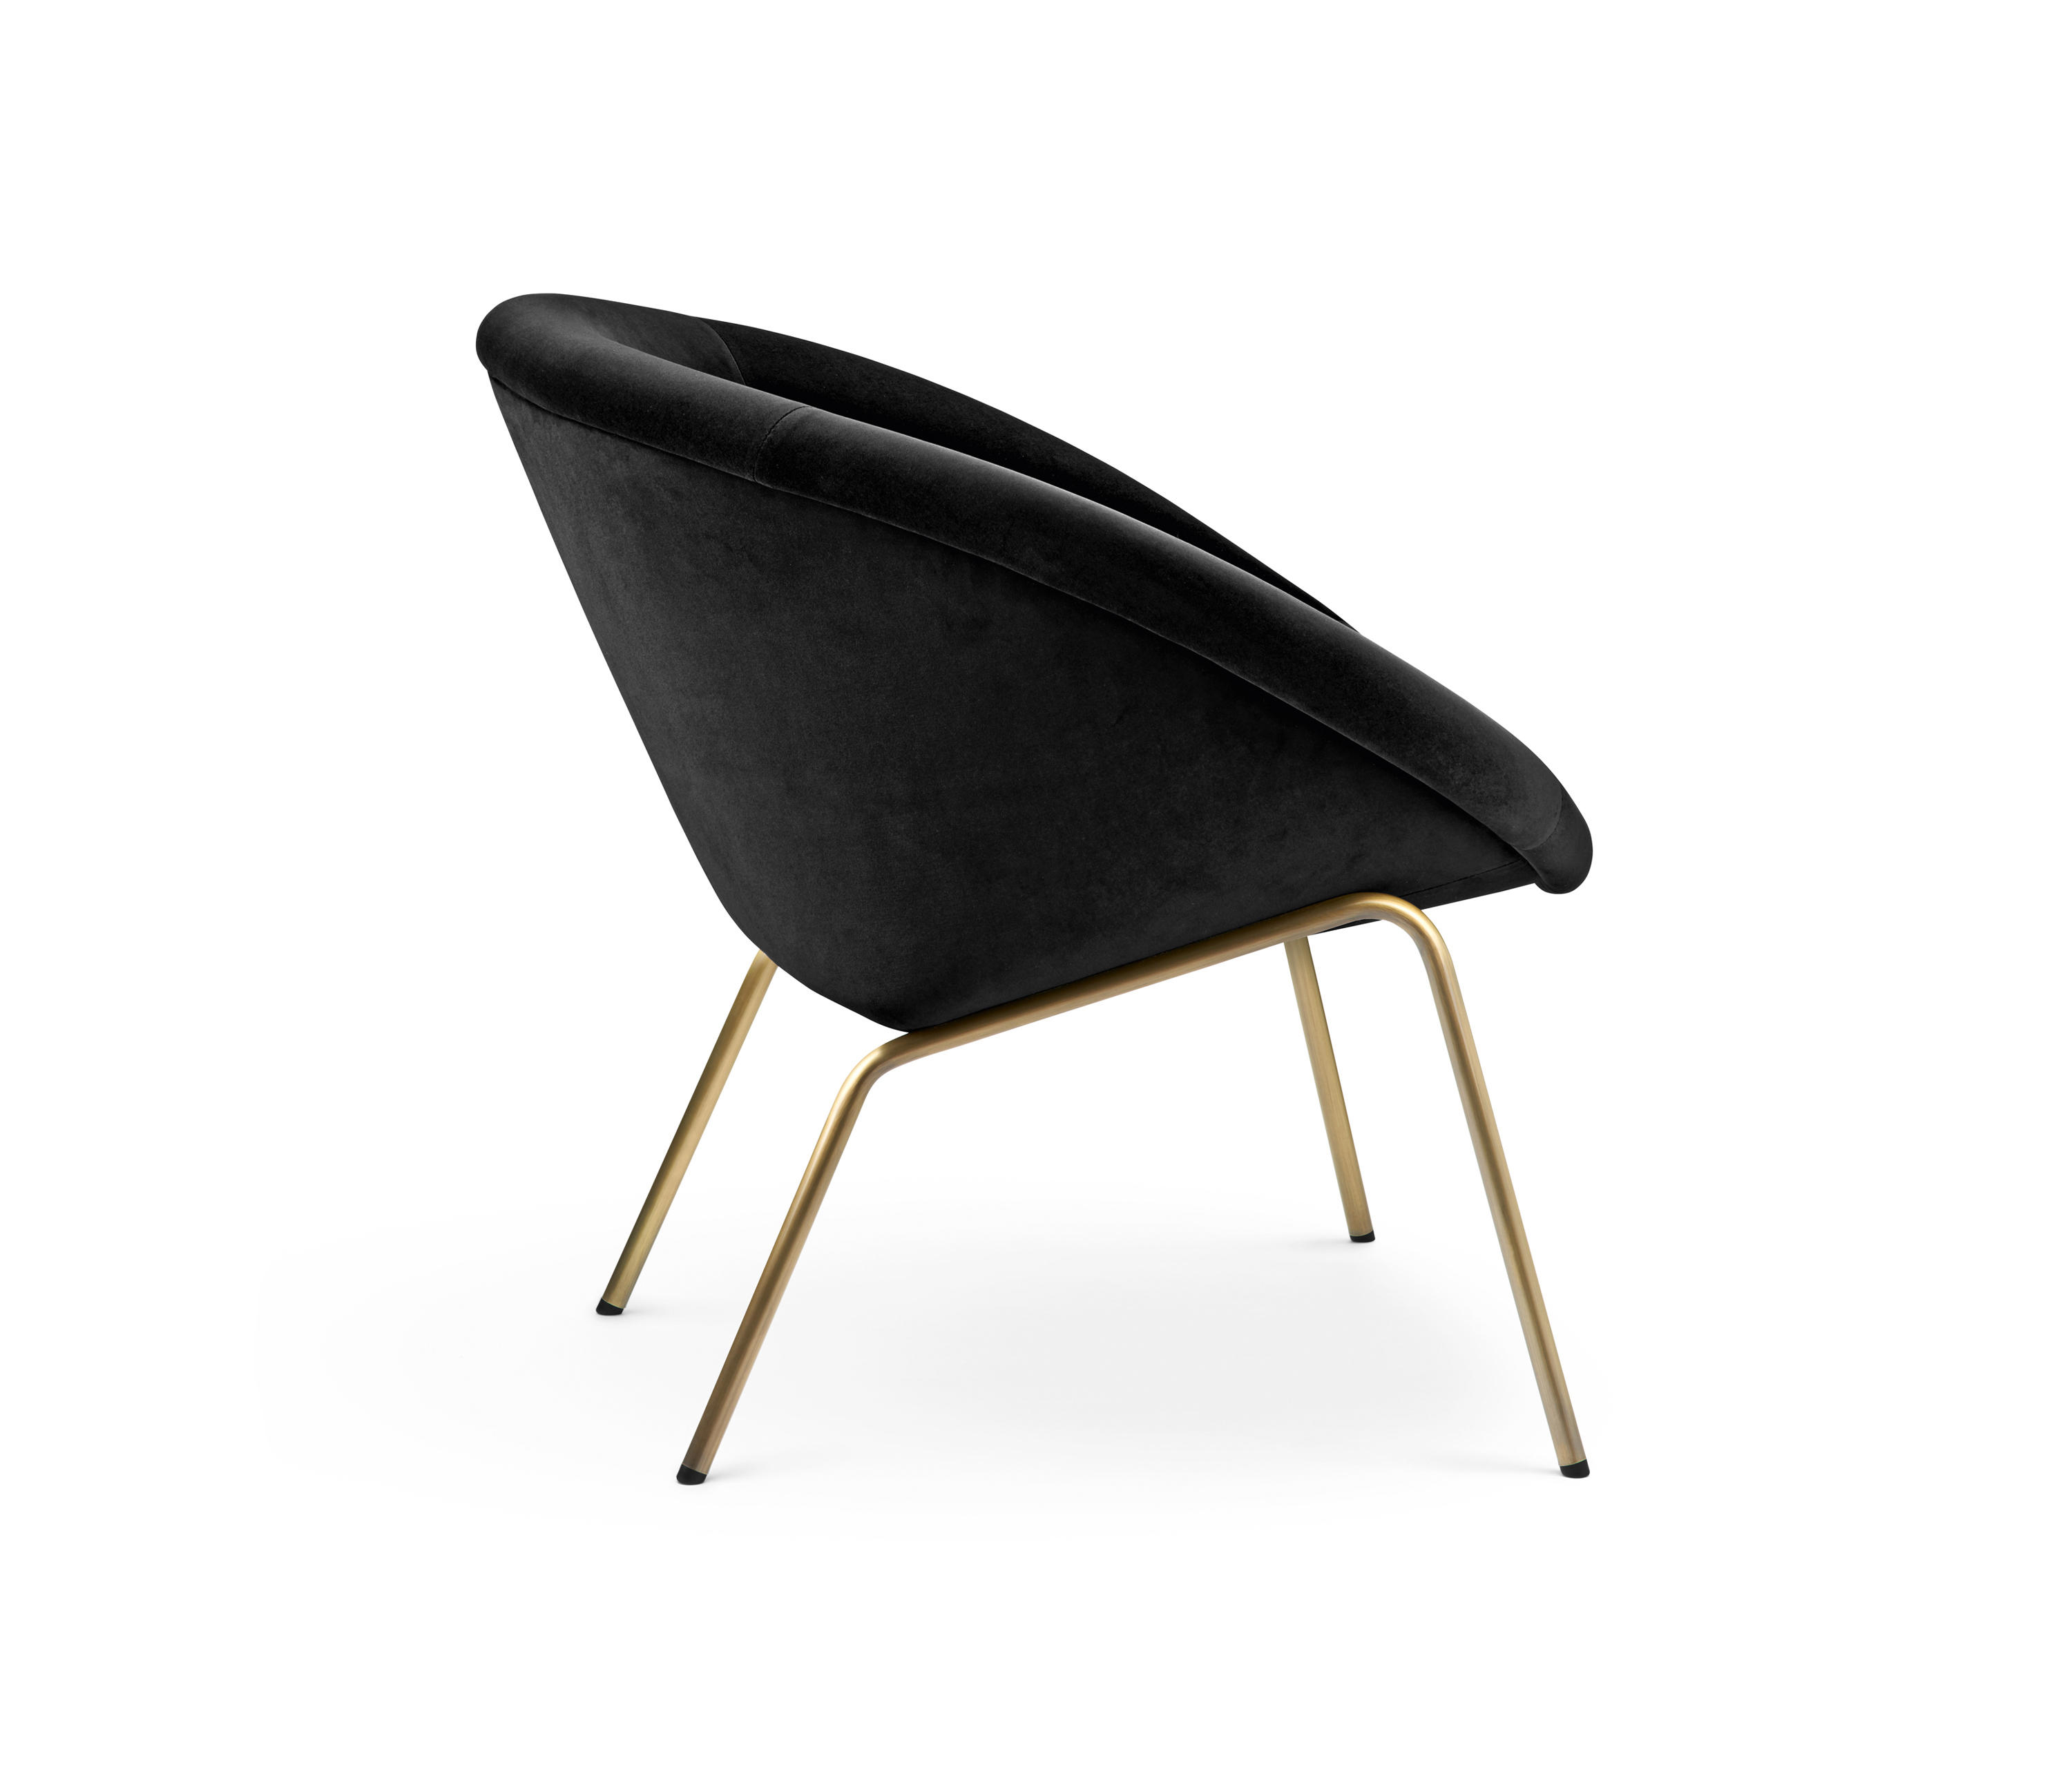 369 - Loungesessel von Walter Knoll | Architonic